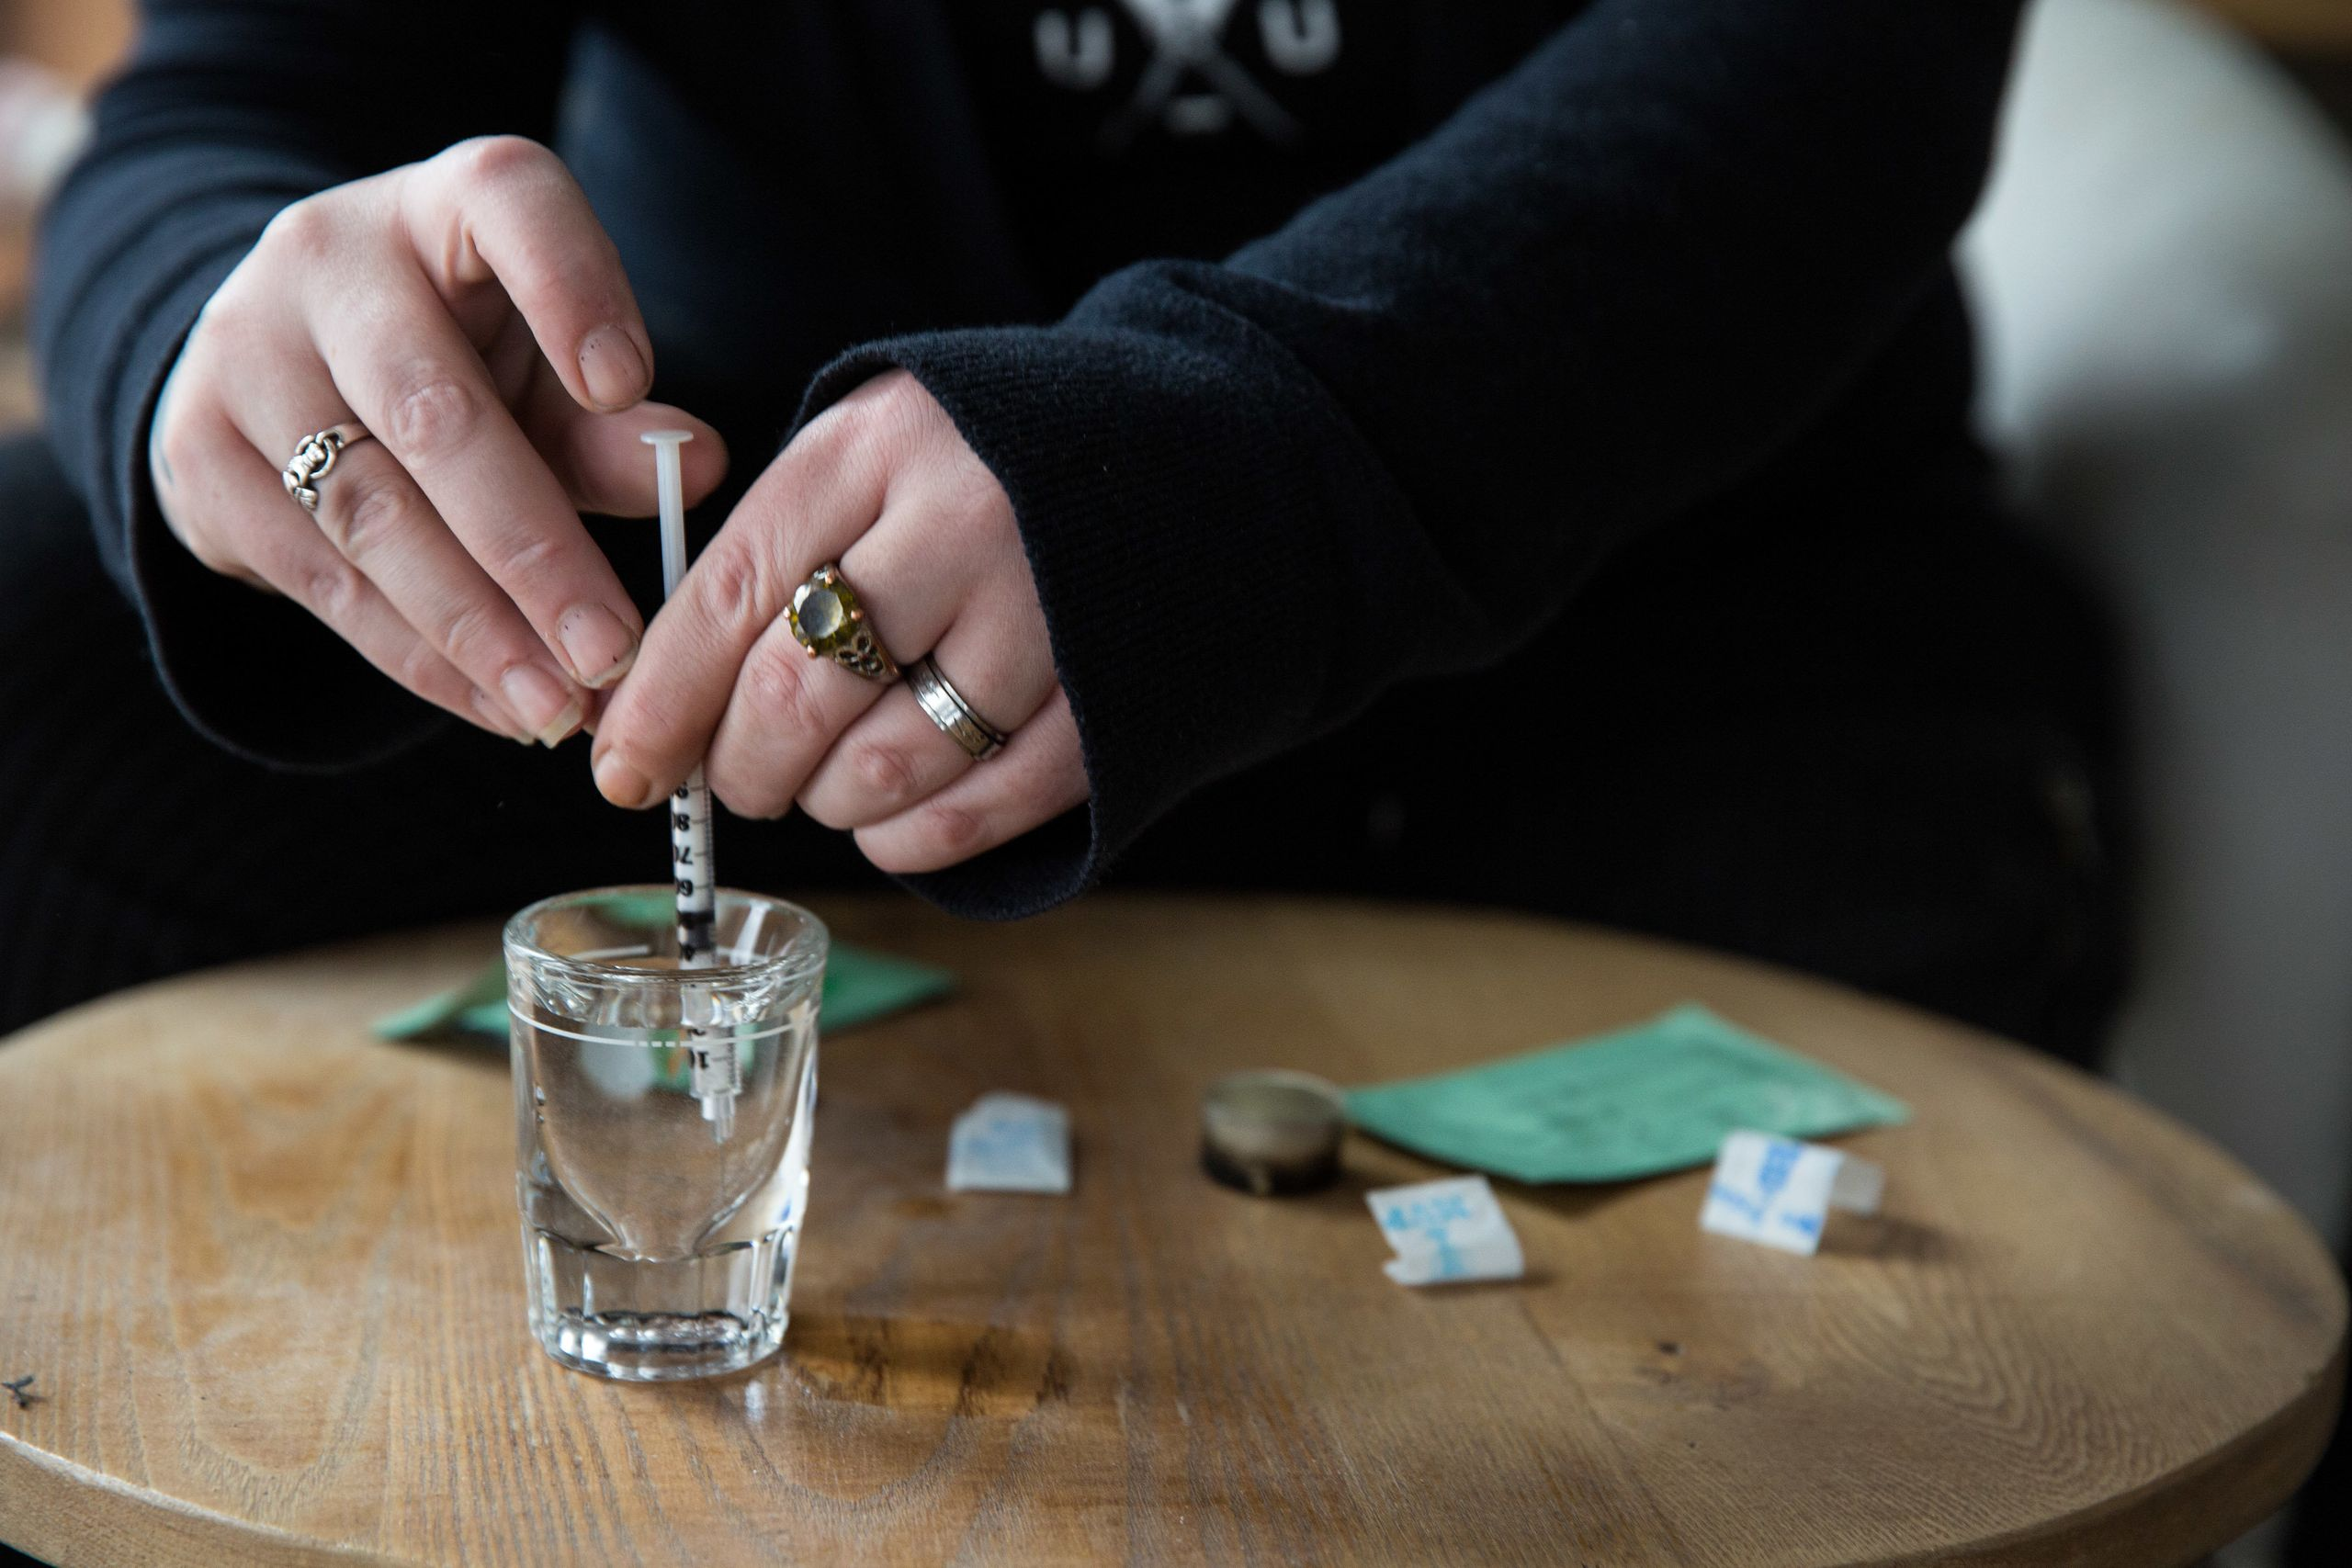 Tilley tests for the presence of Fentanyl by gathering drops of water and mixing them with the drugs. The